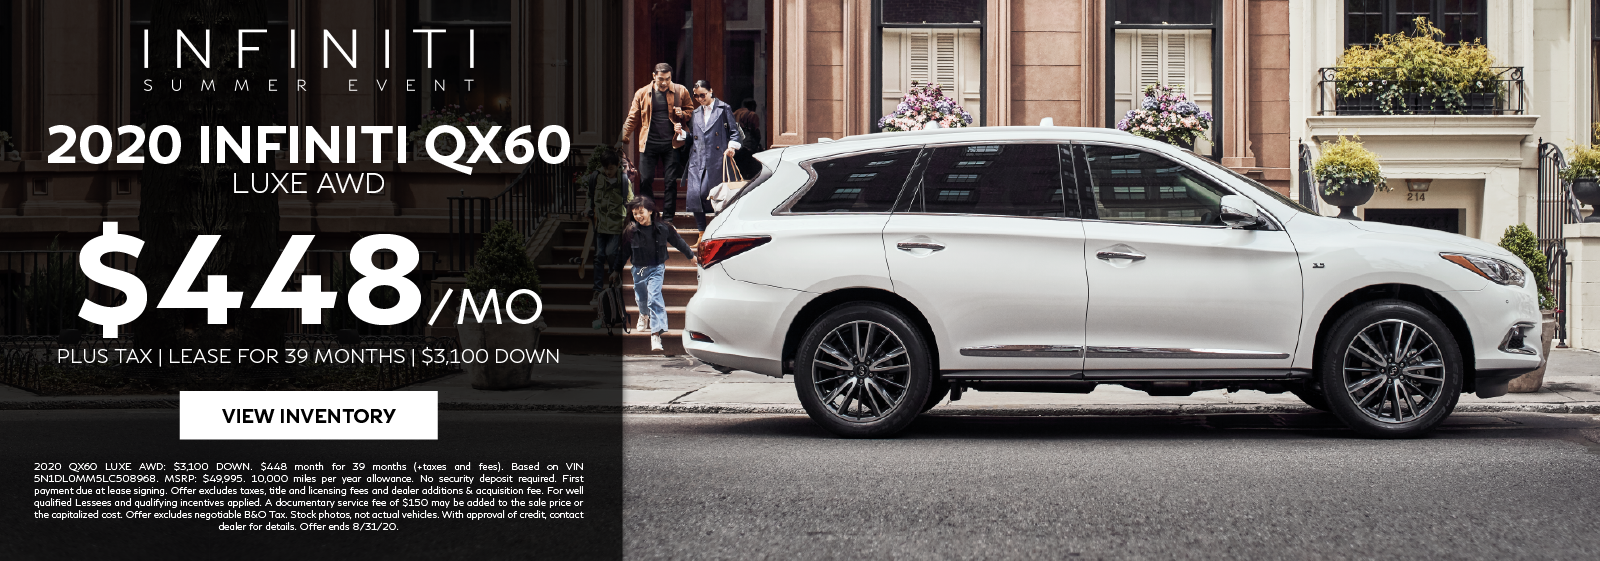 Lease a 2020 QX60 LUXE AWD for $448 per month for 39 months. Click to view inventory.